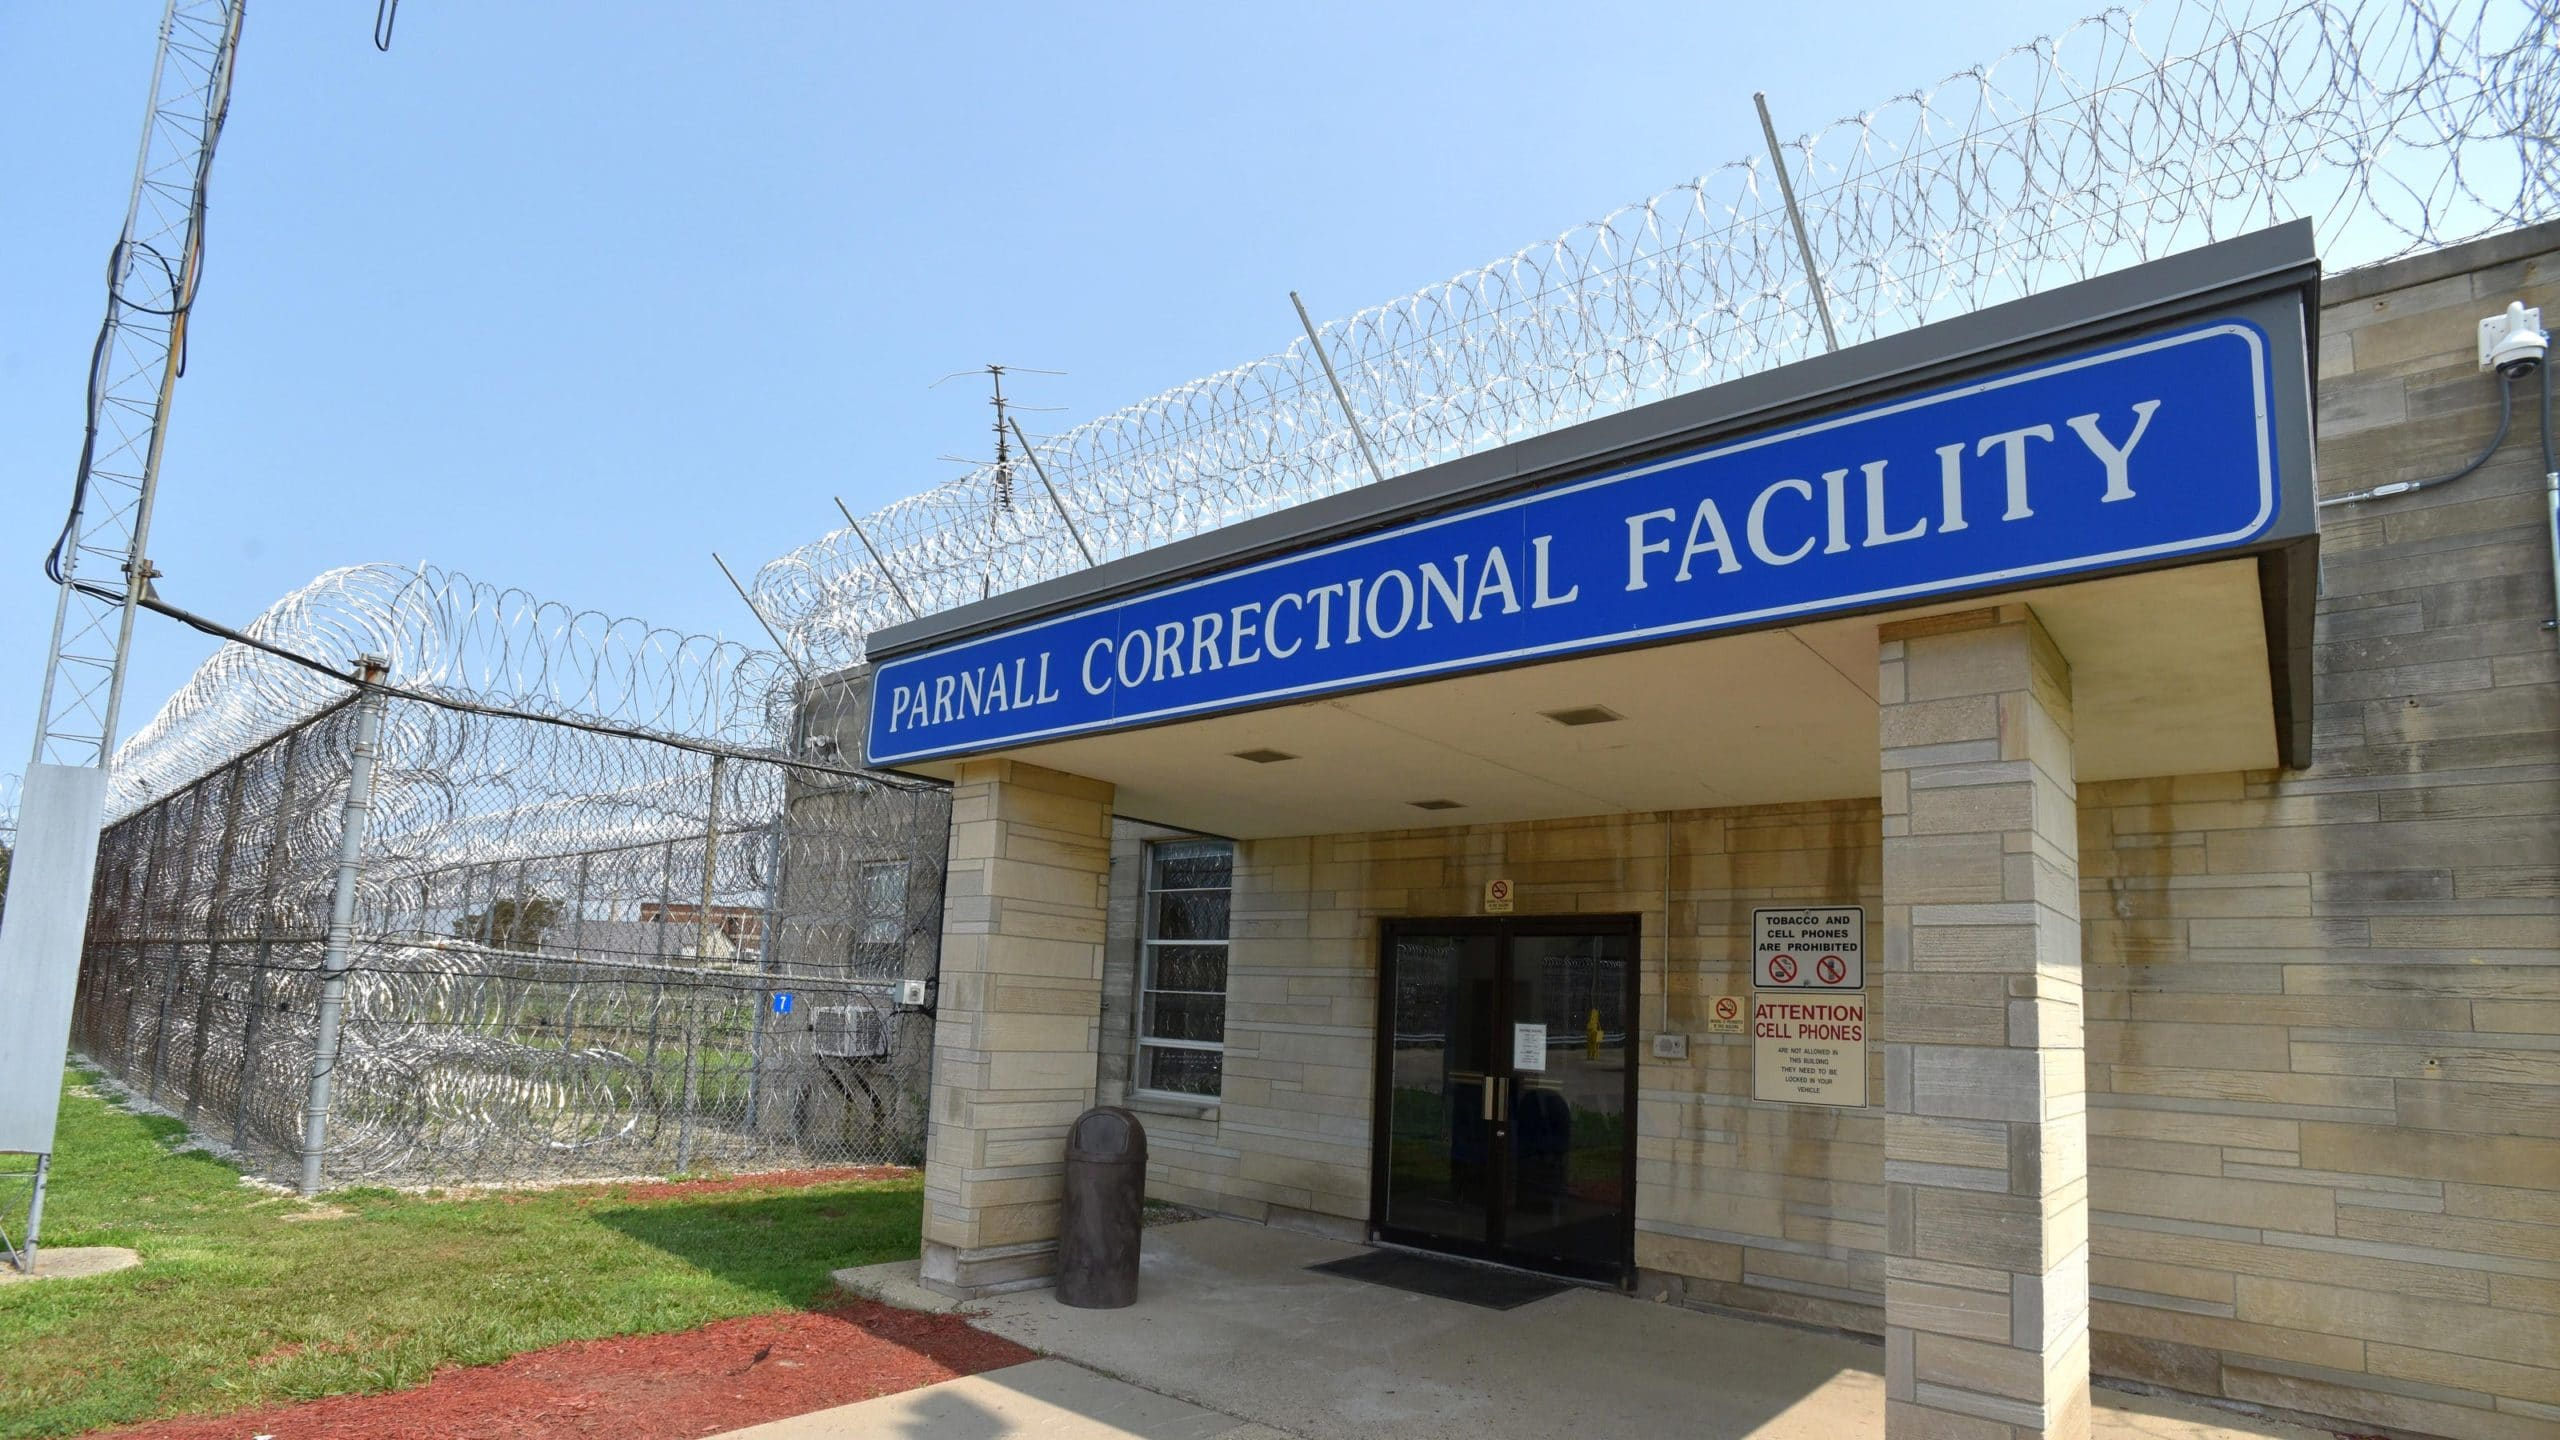 Image of razor ribbon and commercial chain link security fencing at Parnall Correctional Facility